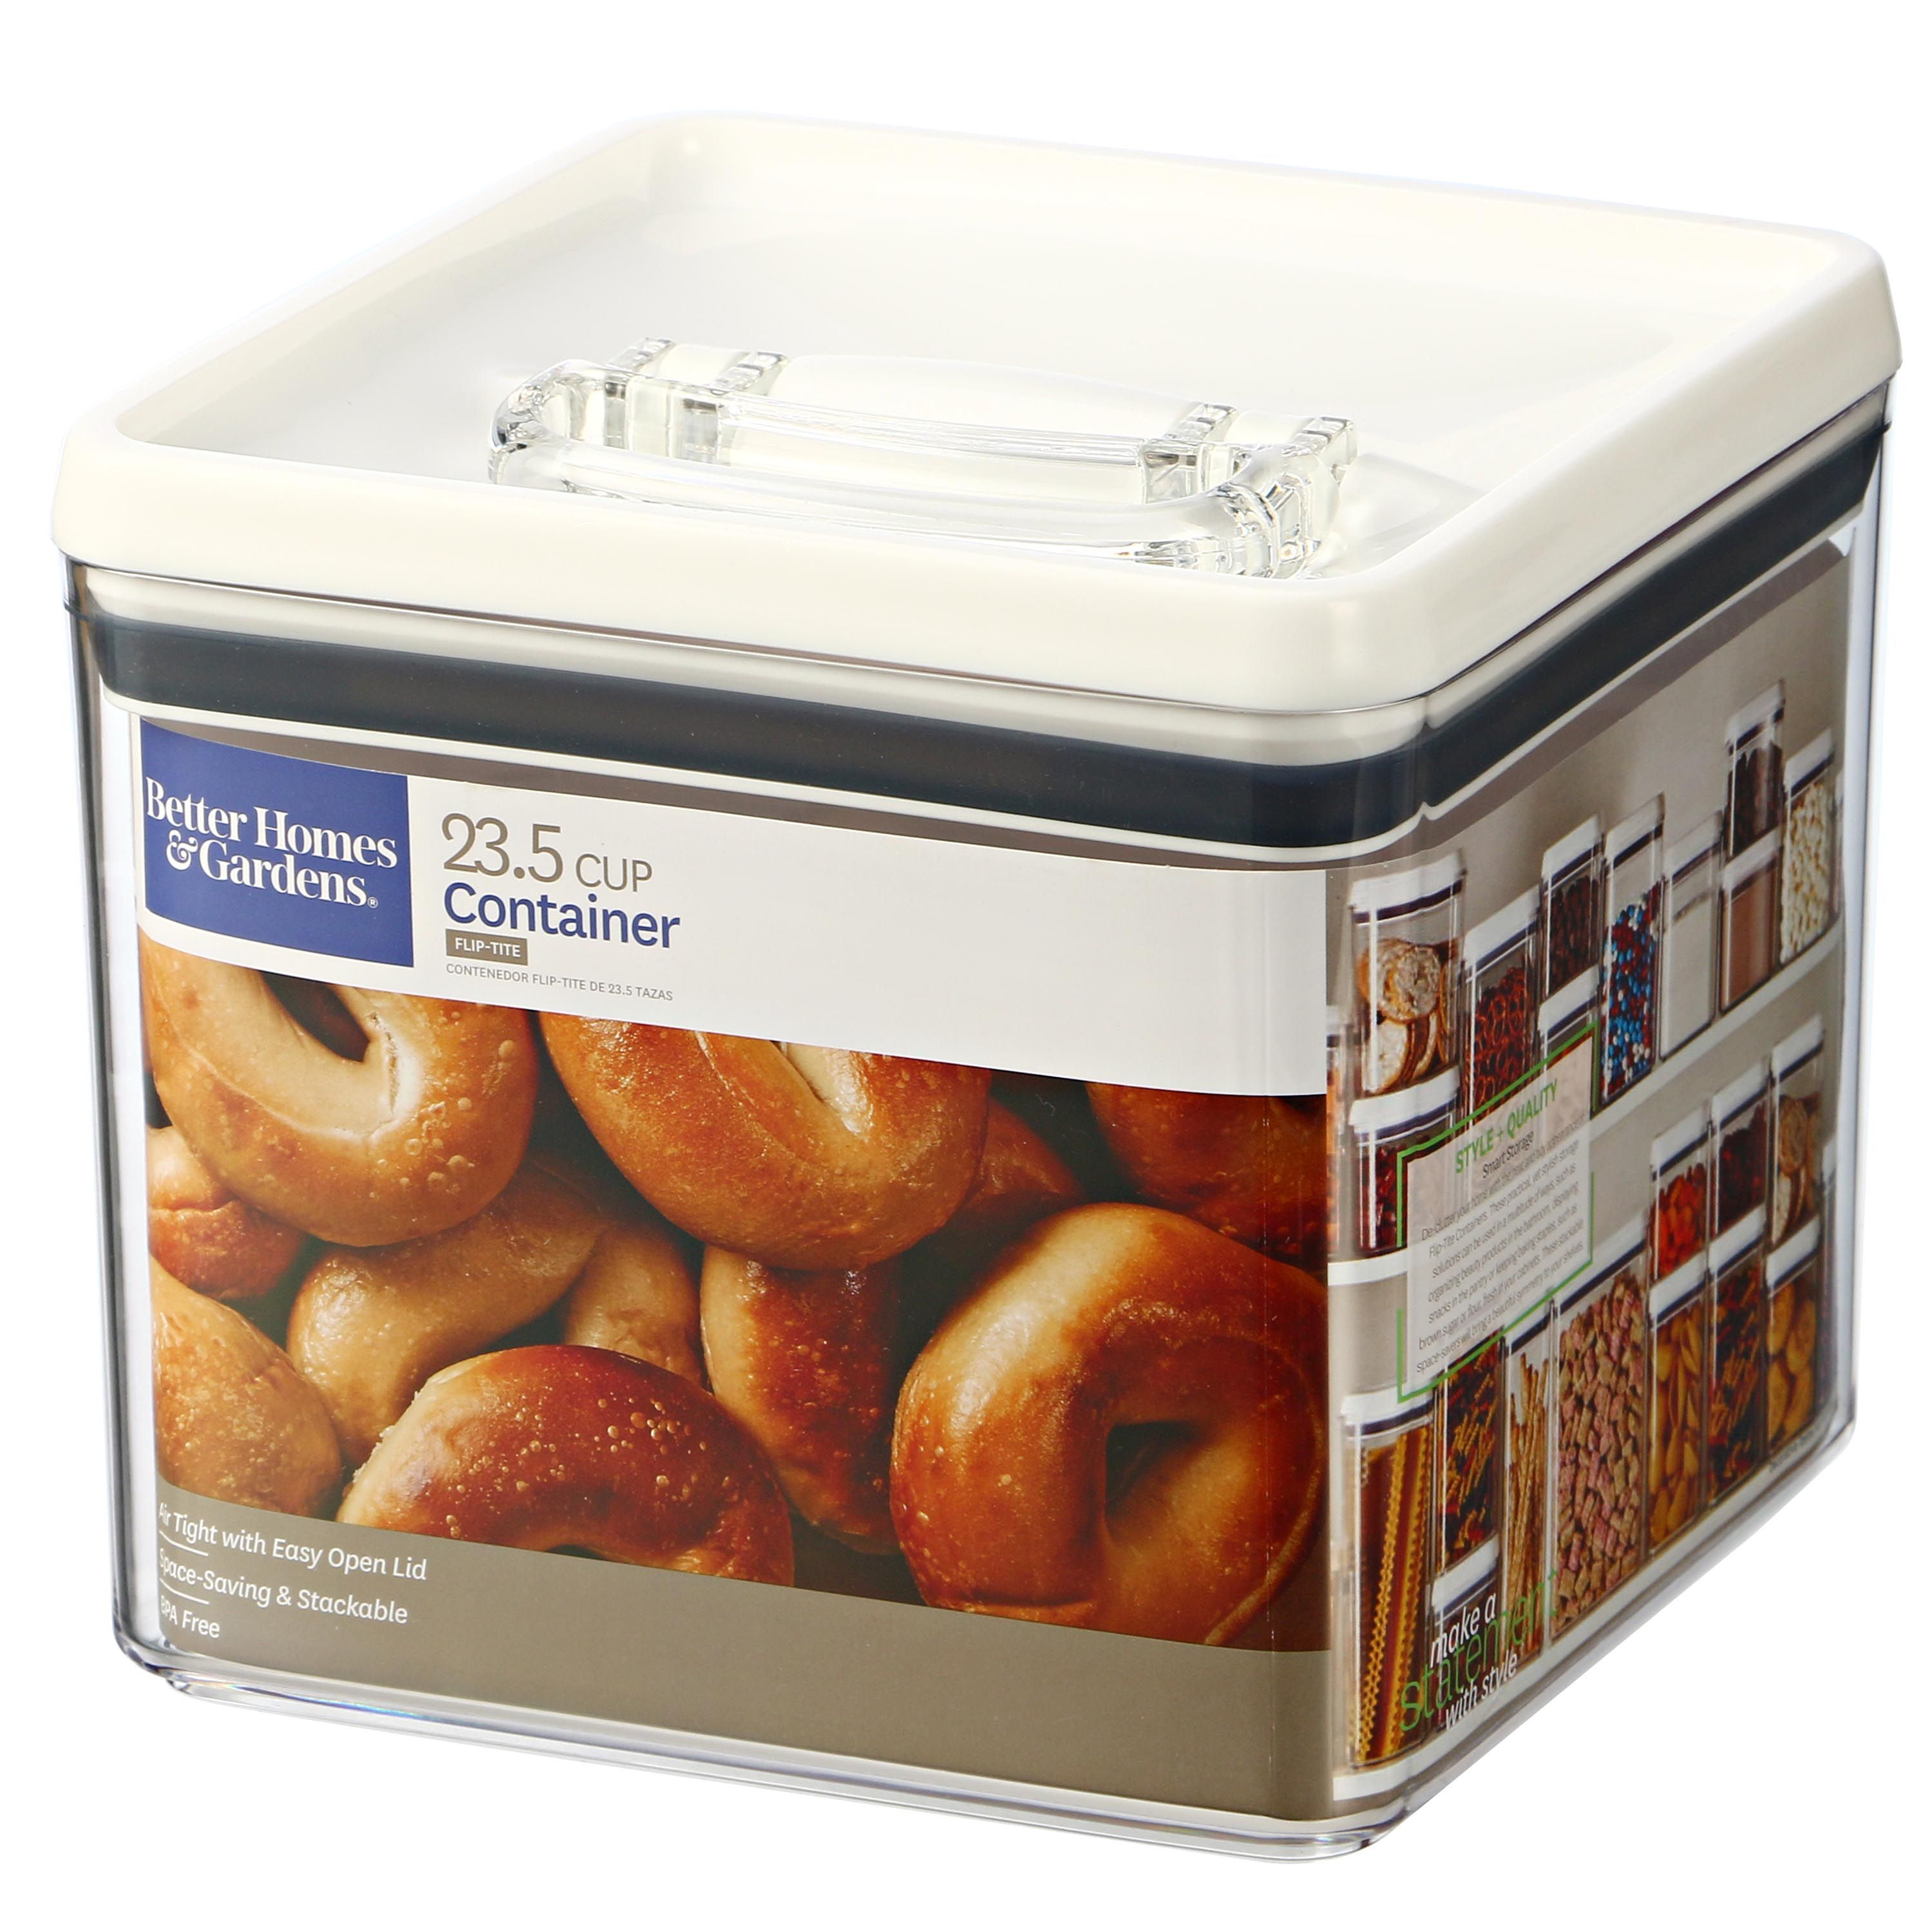 d107bd5ff08aee43264e1df7bdb734d7 - Better Homes And Gardens Flip Tite Containers 6 Piece